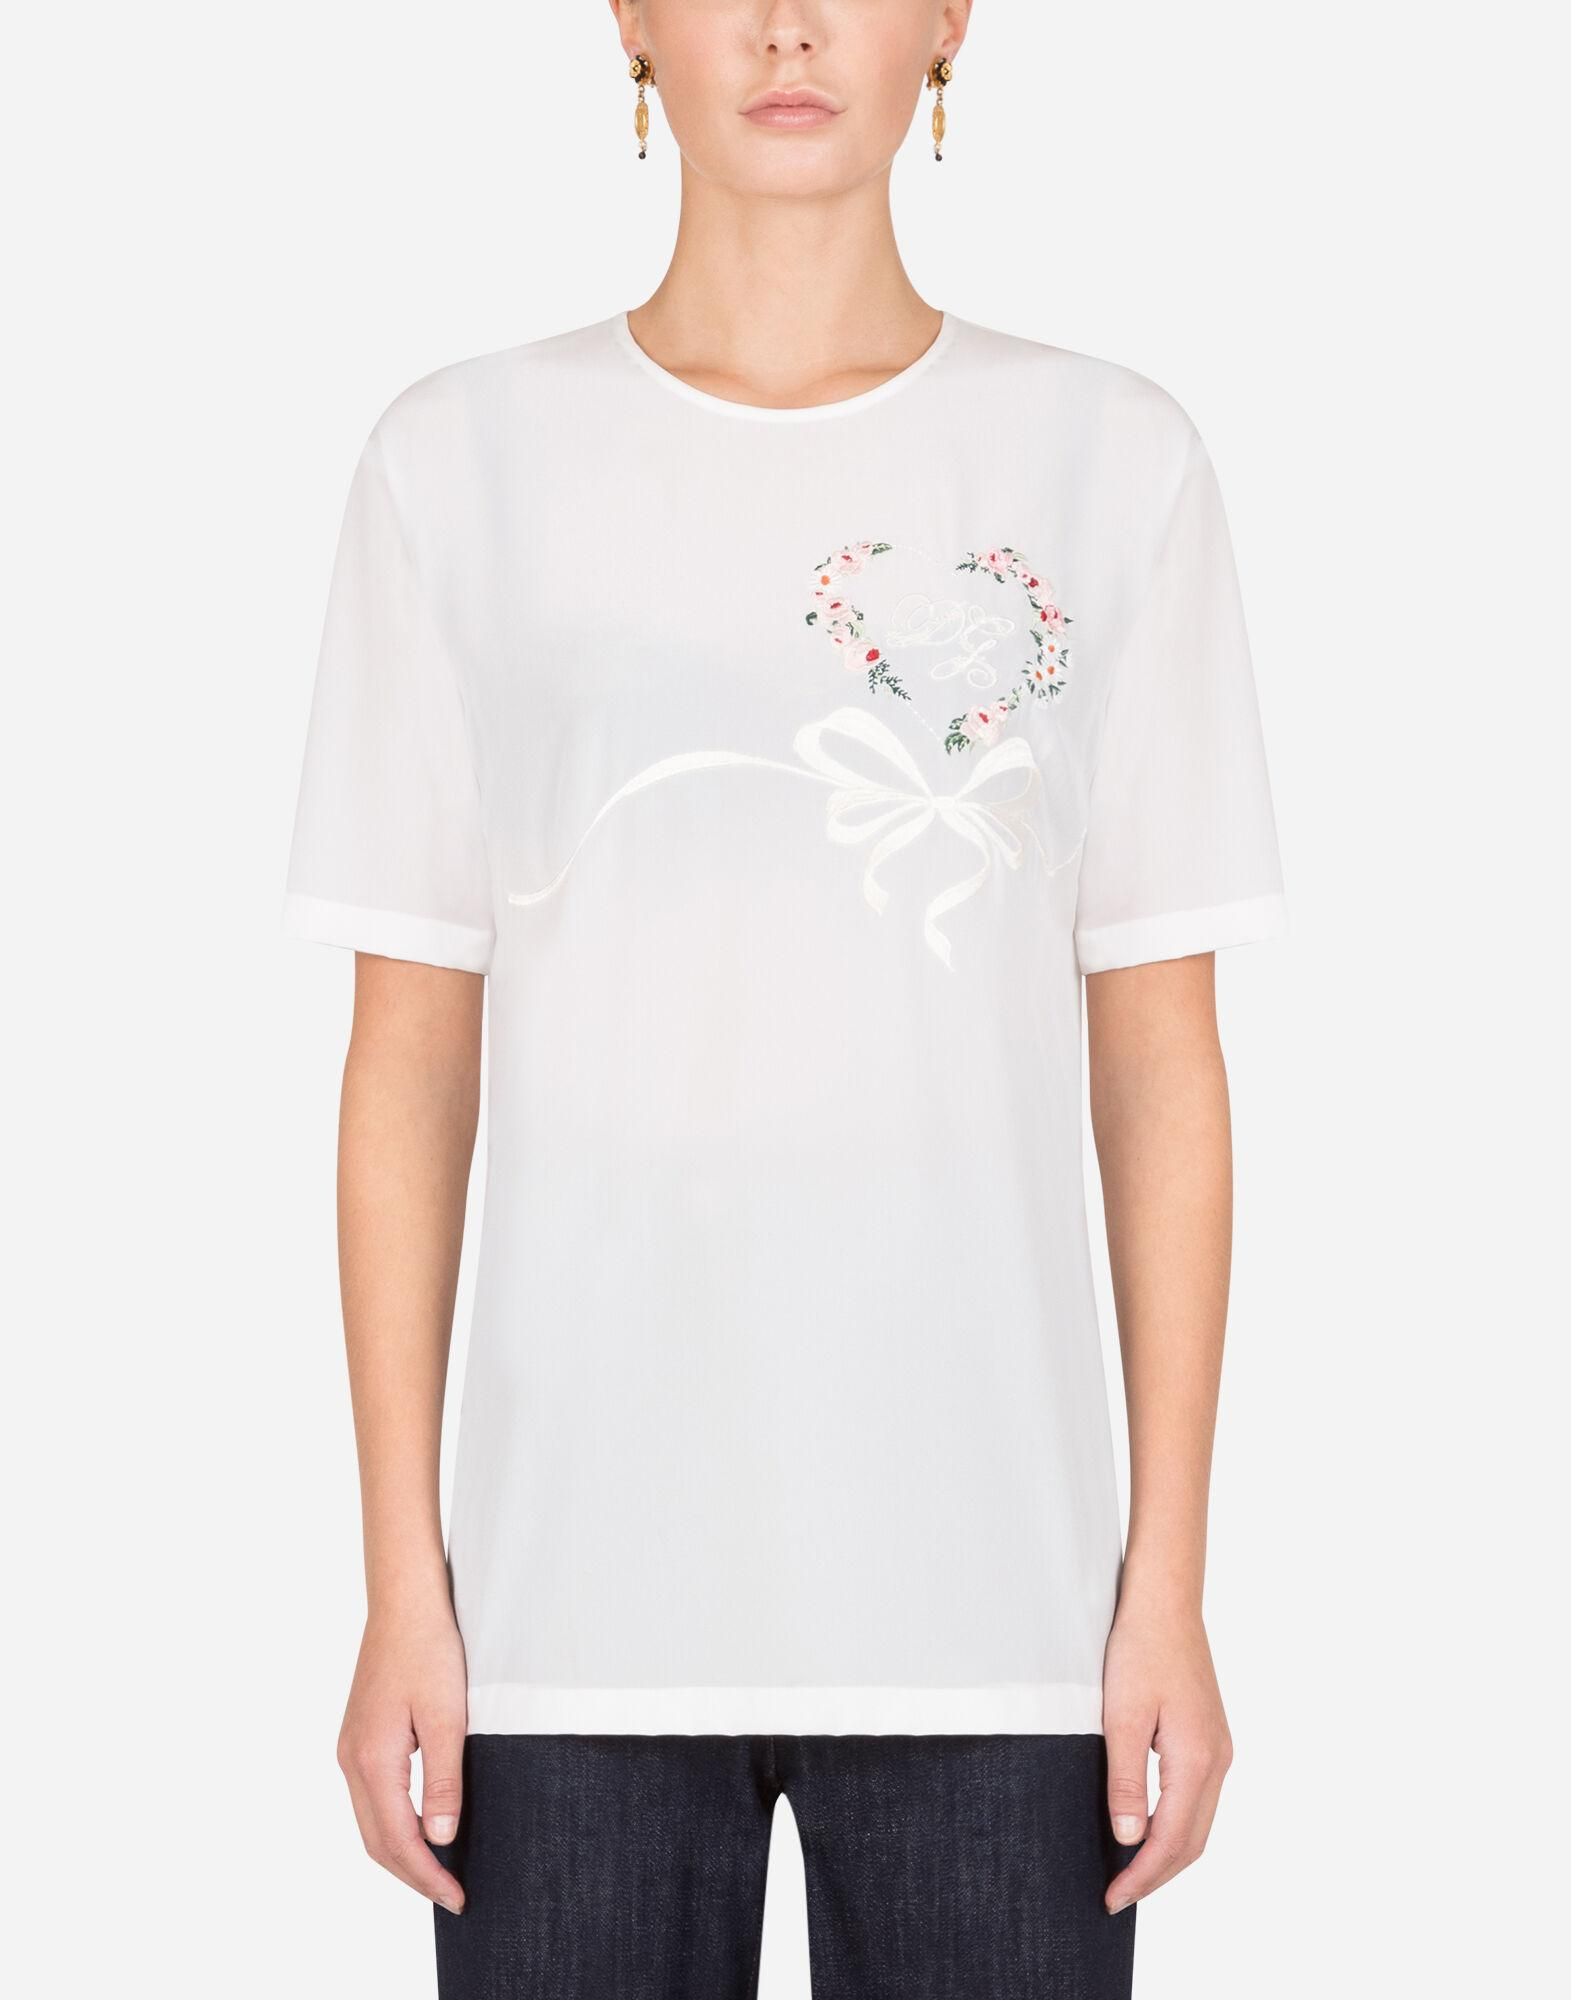 Crepe de chine top with embroidery